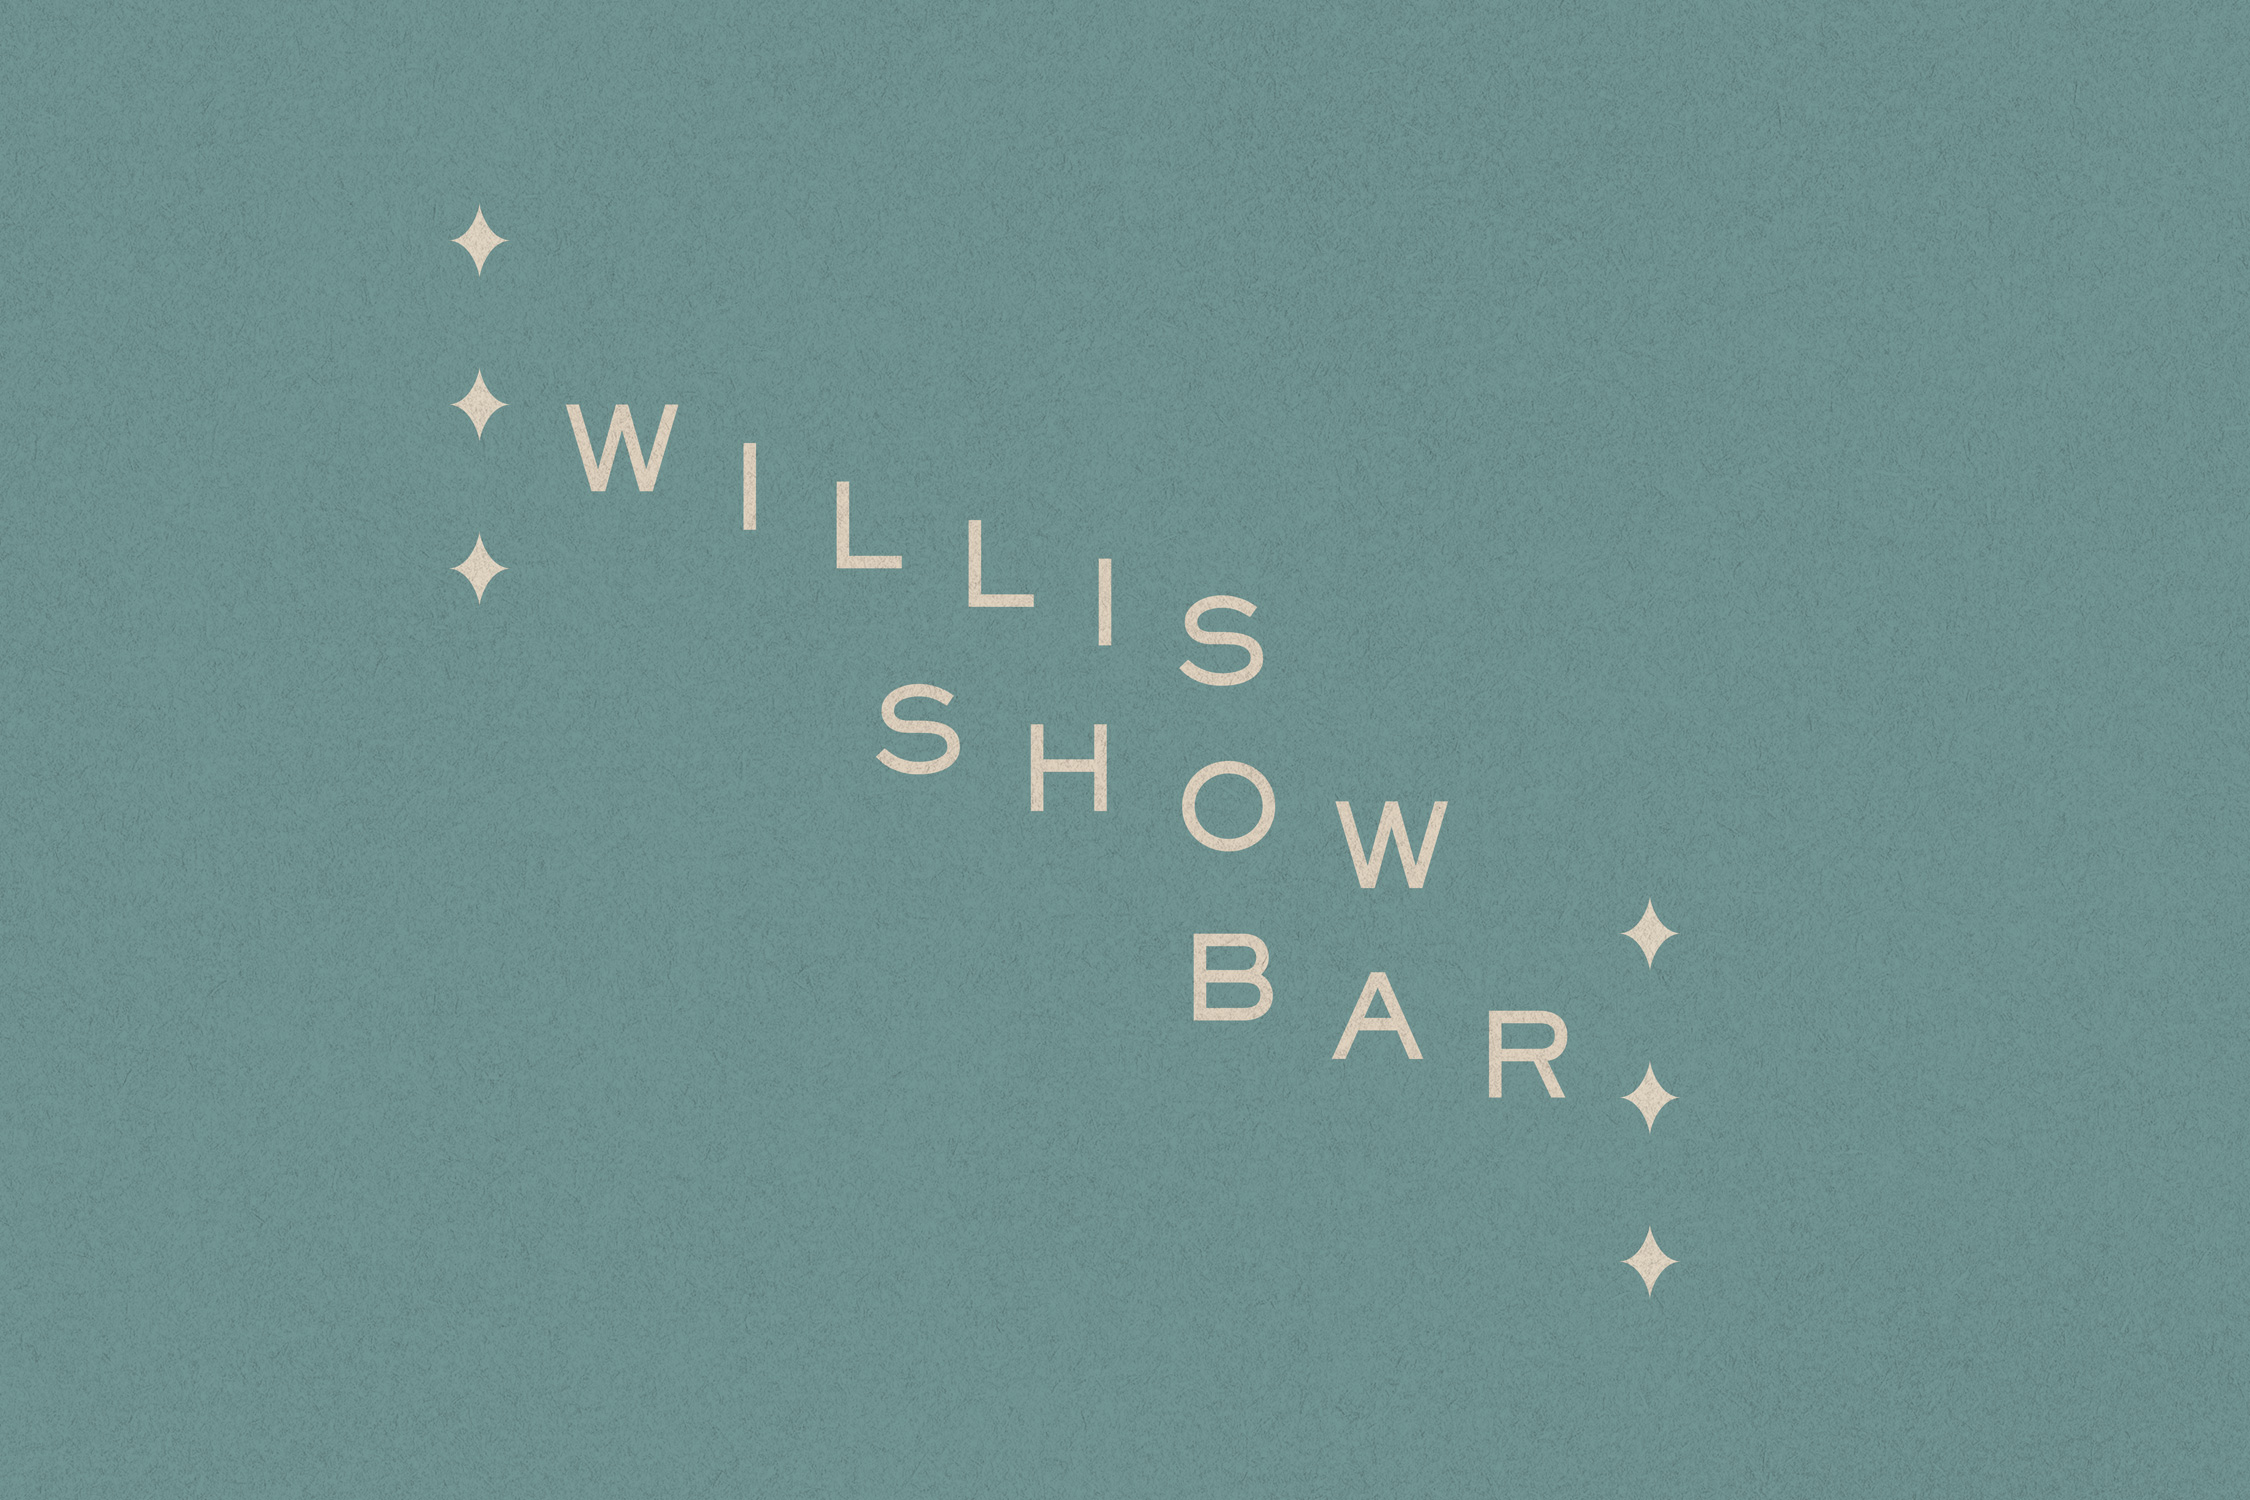 Willis_Type_Treatment3